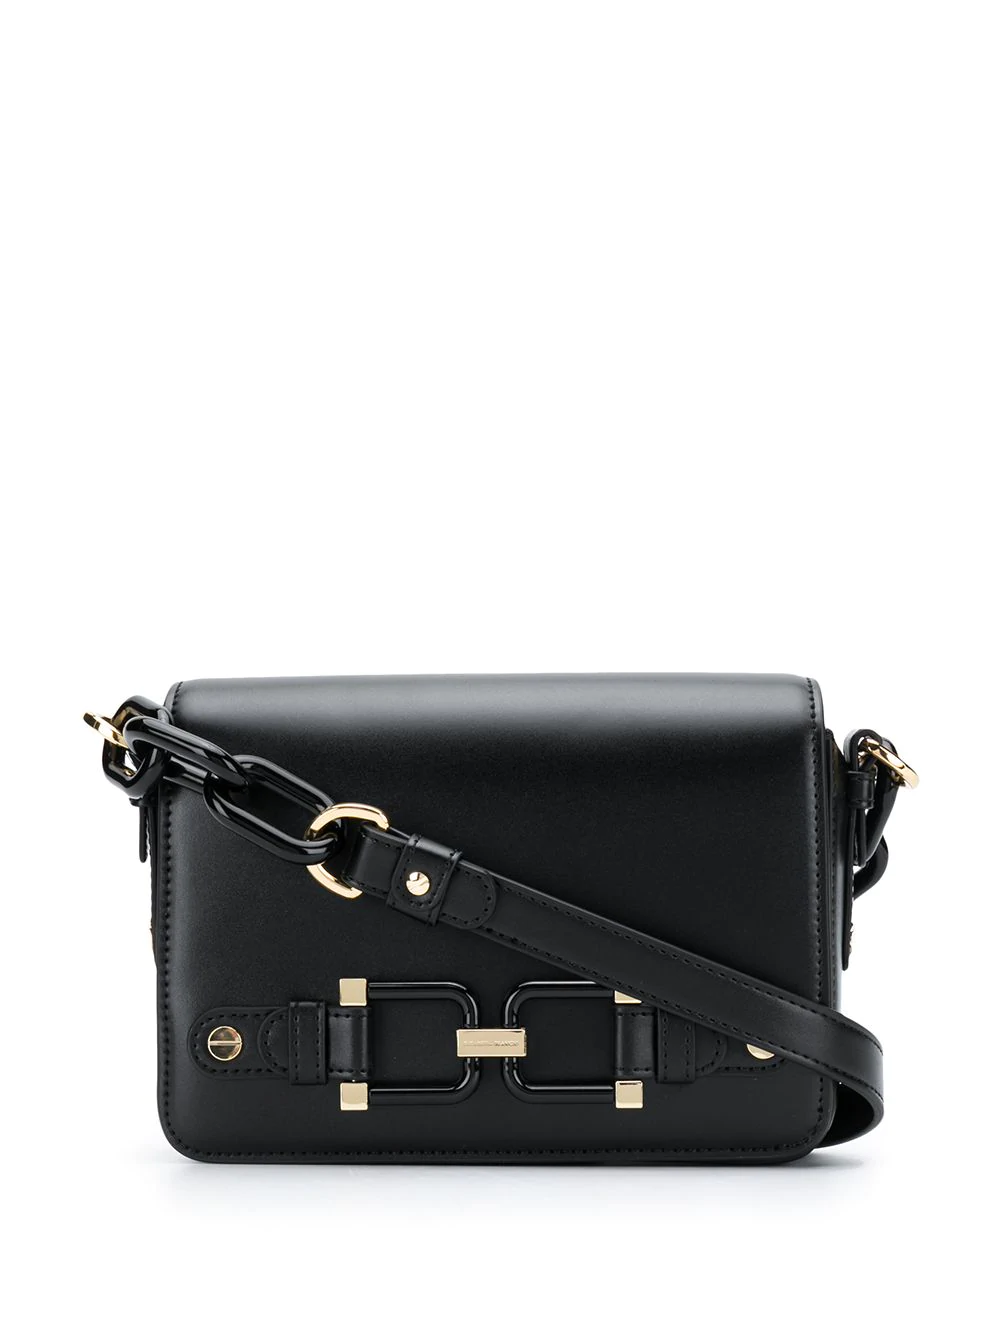 14465b6ef1 Elisabetta Franchi Mini Box Shoulder Bag - Black